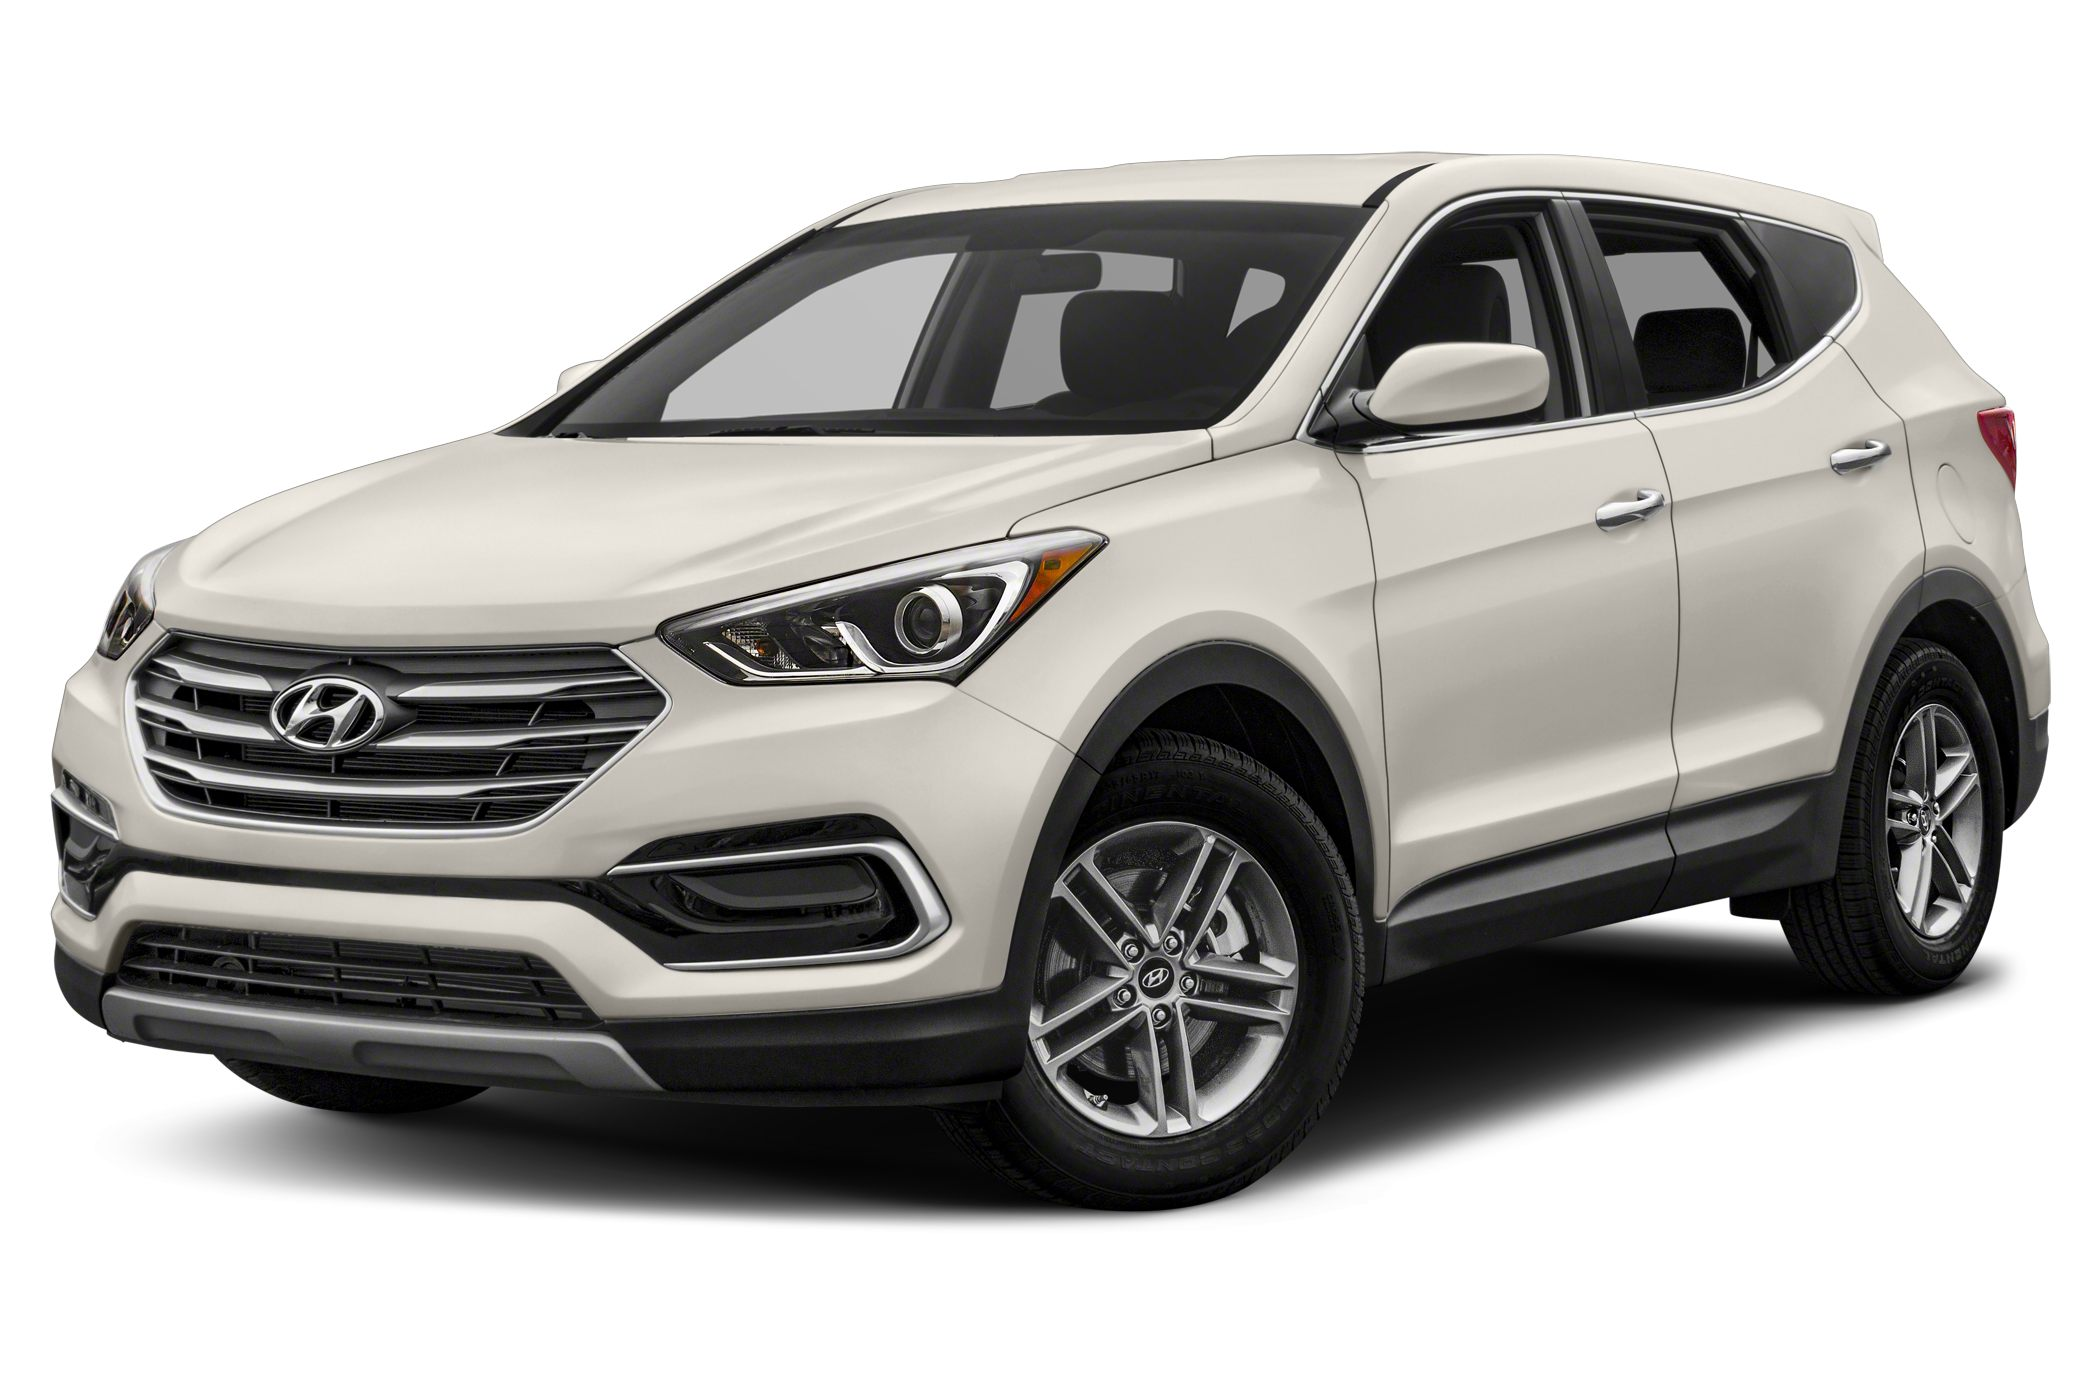 hyundai recalls santa fe sport for seatbelt warning light autoblog. Black Bedroom Furniture Sets. Home Design Ideas